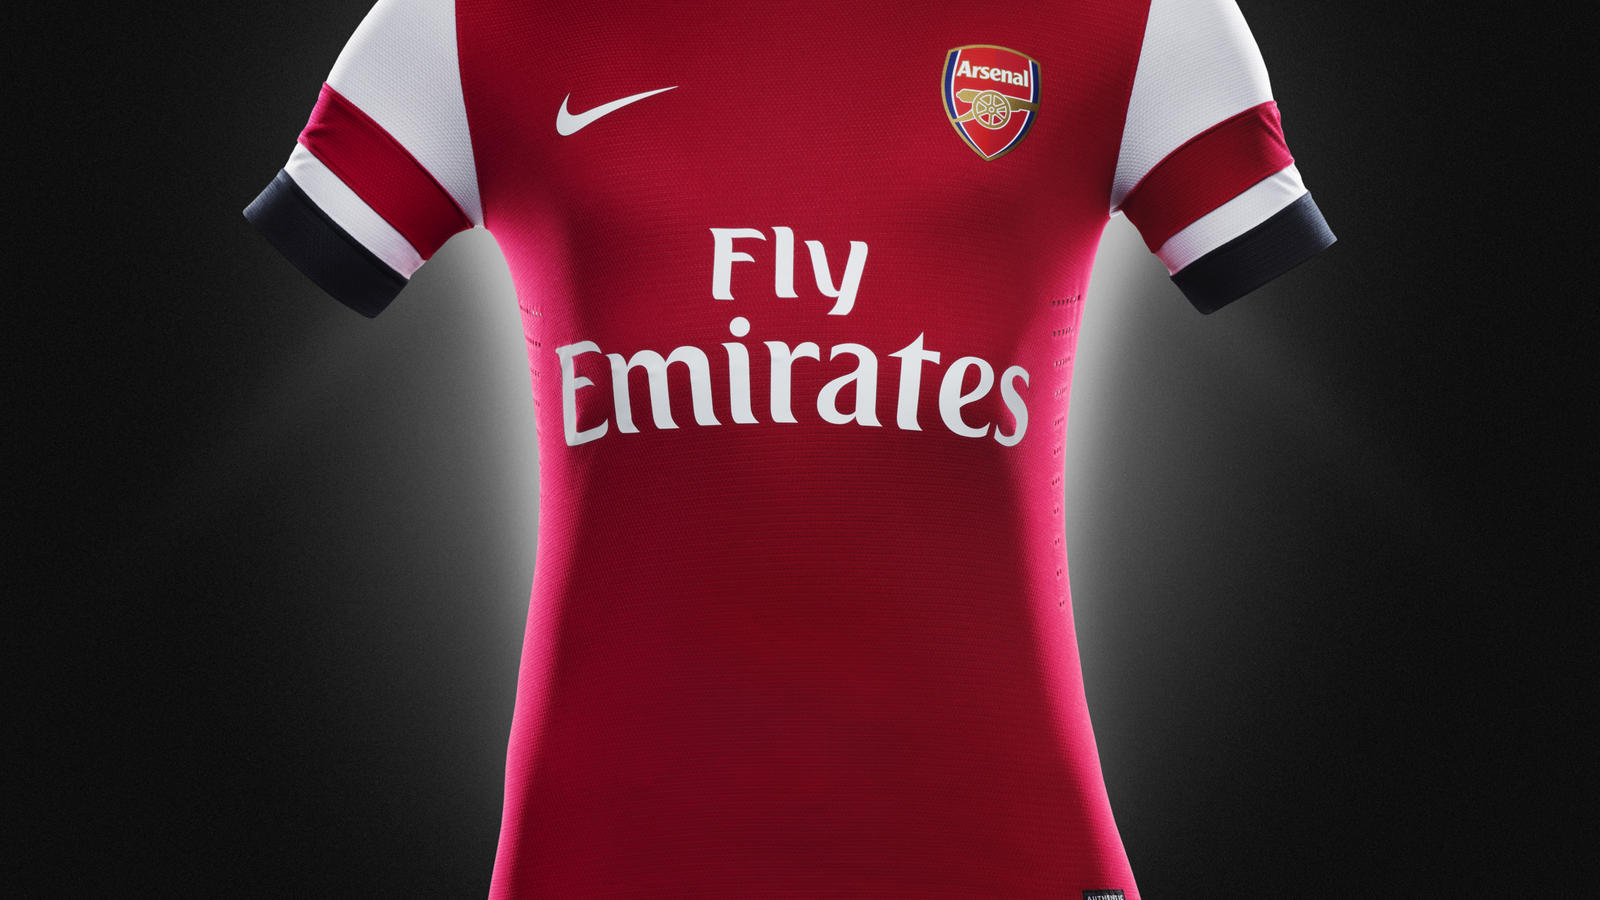 new product 64b5f 5aa1c Nike Football Unveils Arsenal Home Kit for Season 2012/13 ...